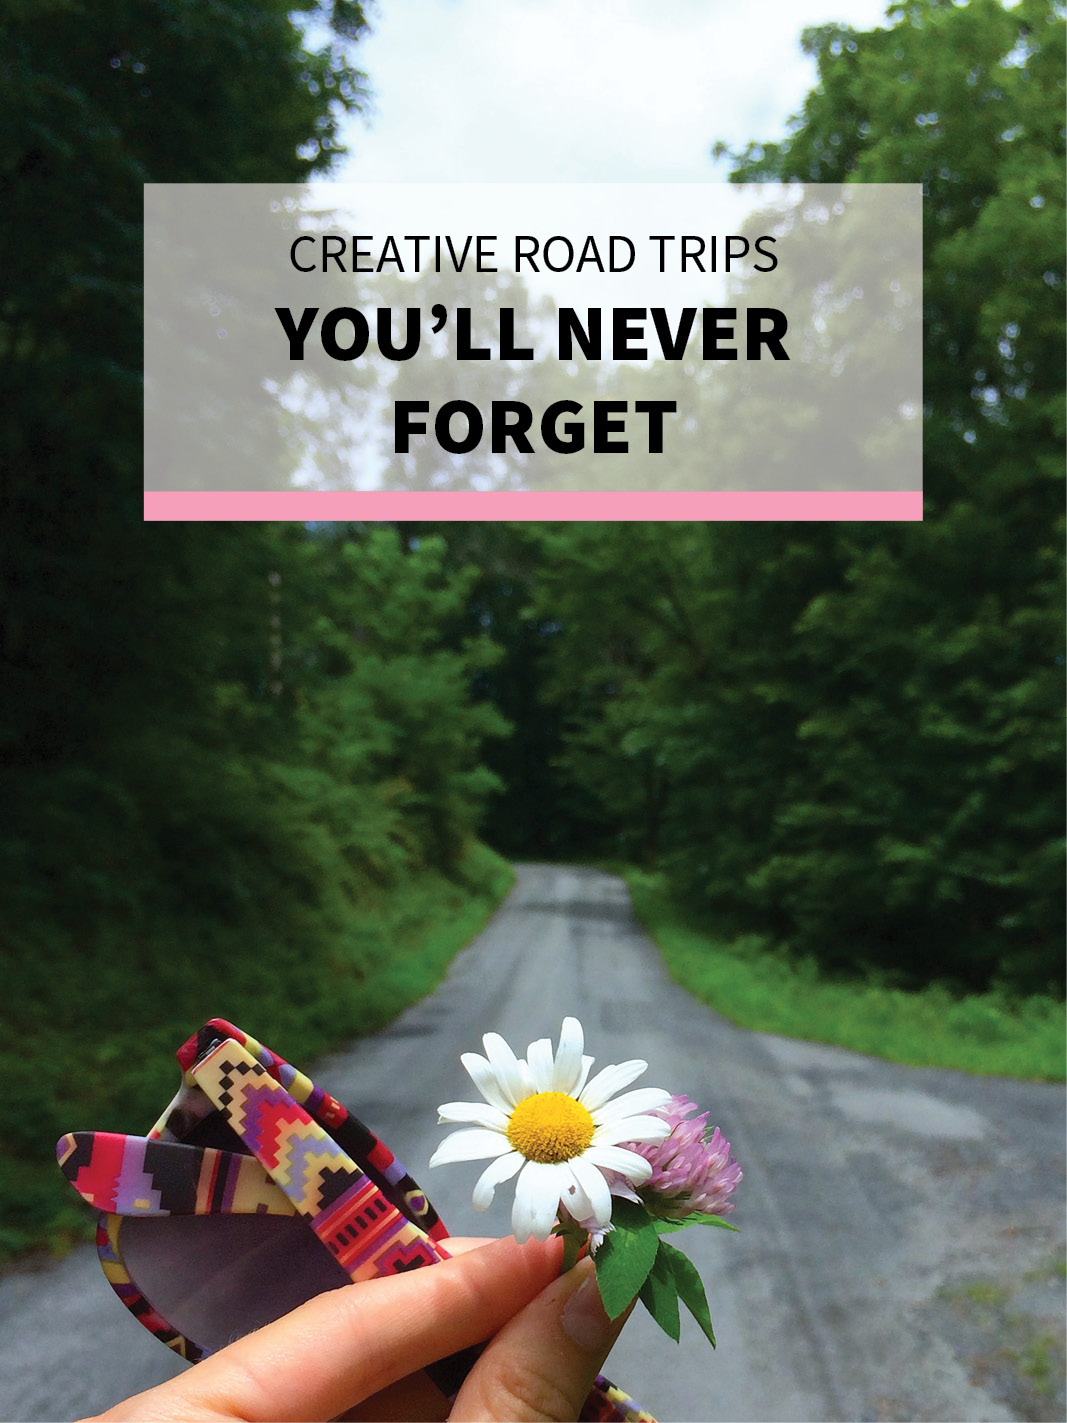 Creative Road Trips Ideas You'll Never Forget